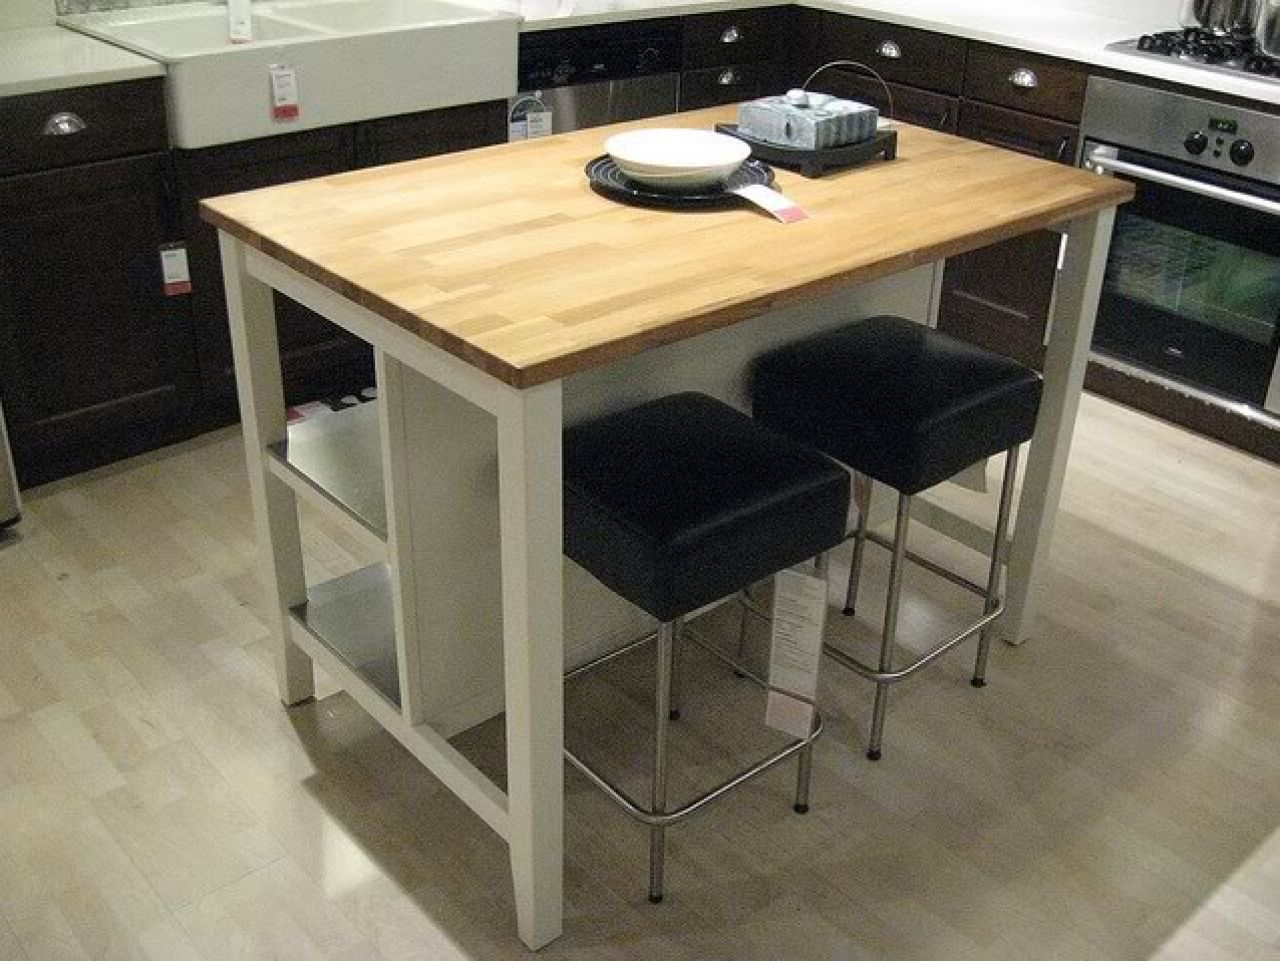 Ikea kücheninsel metall  Kitchen Island Ikea 1 Amazing Pictures | Kitchen islands ...